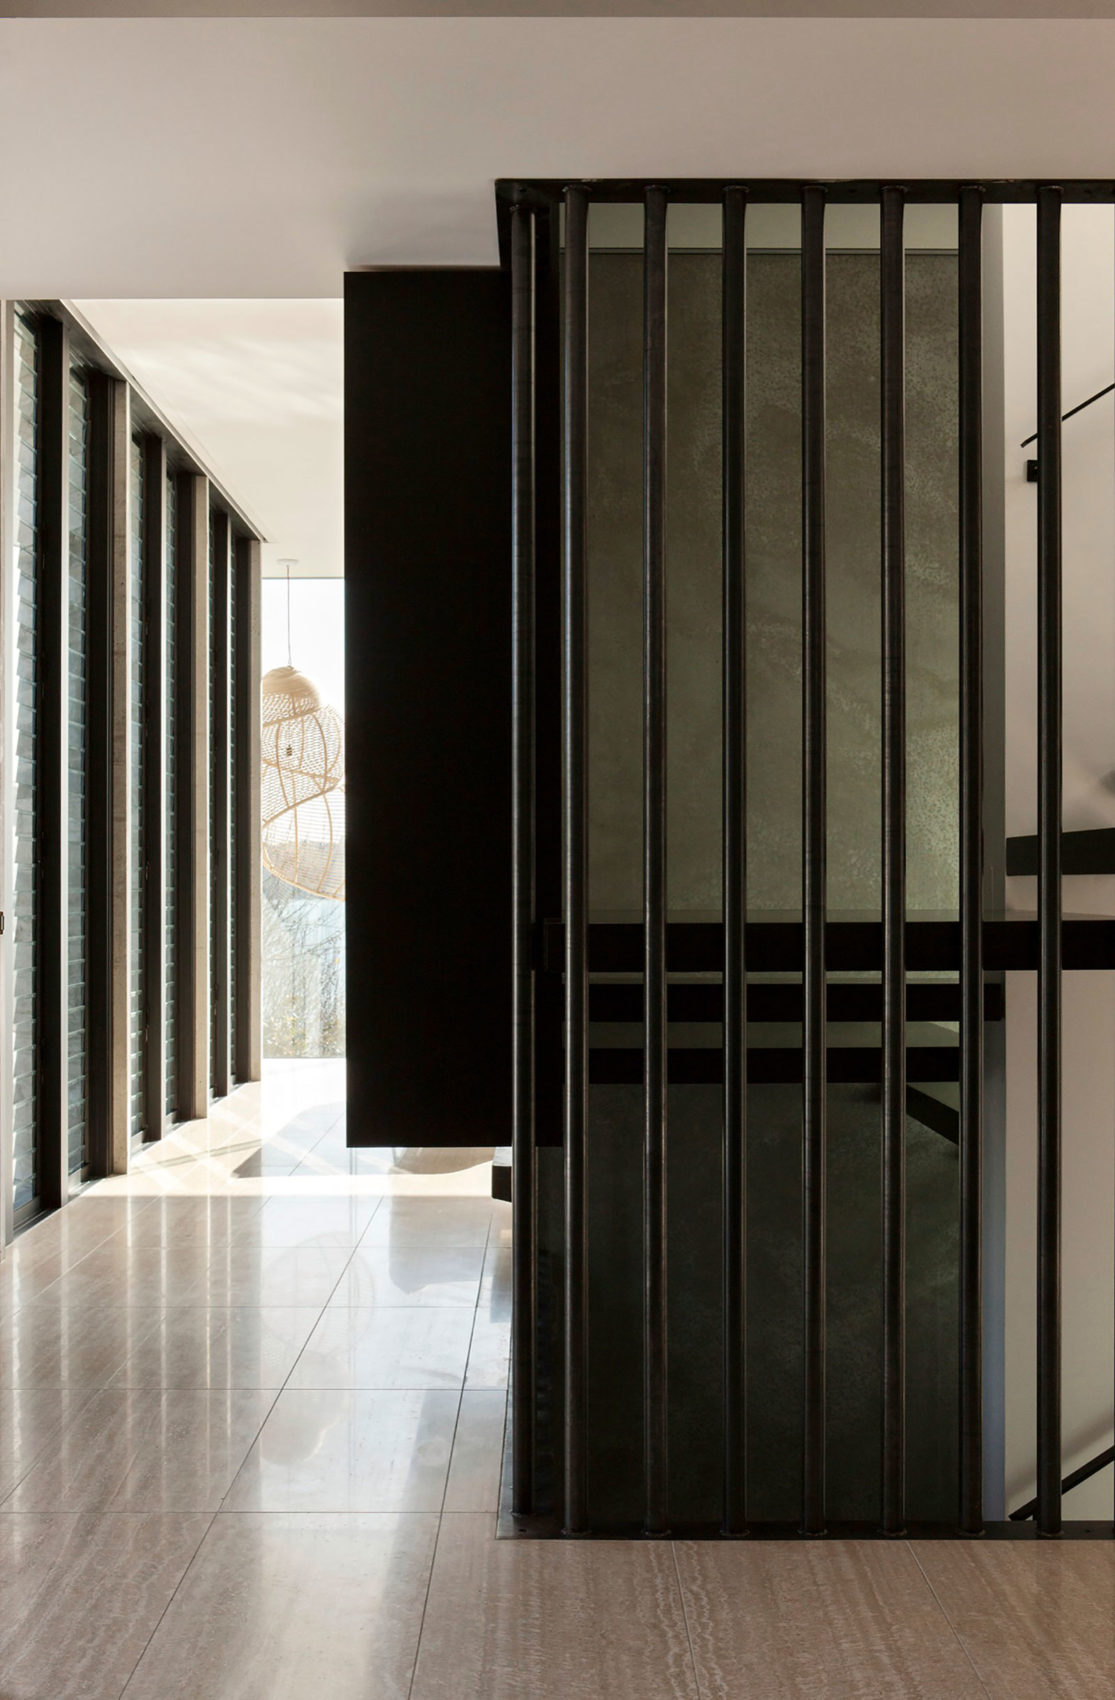 Herne Bay Road by Daniel Marshall Architects (3)